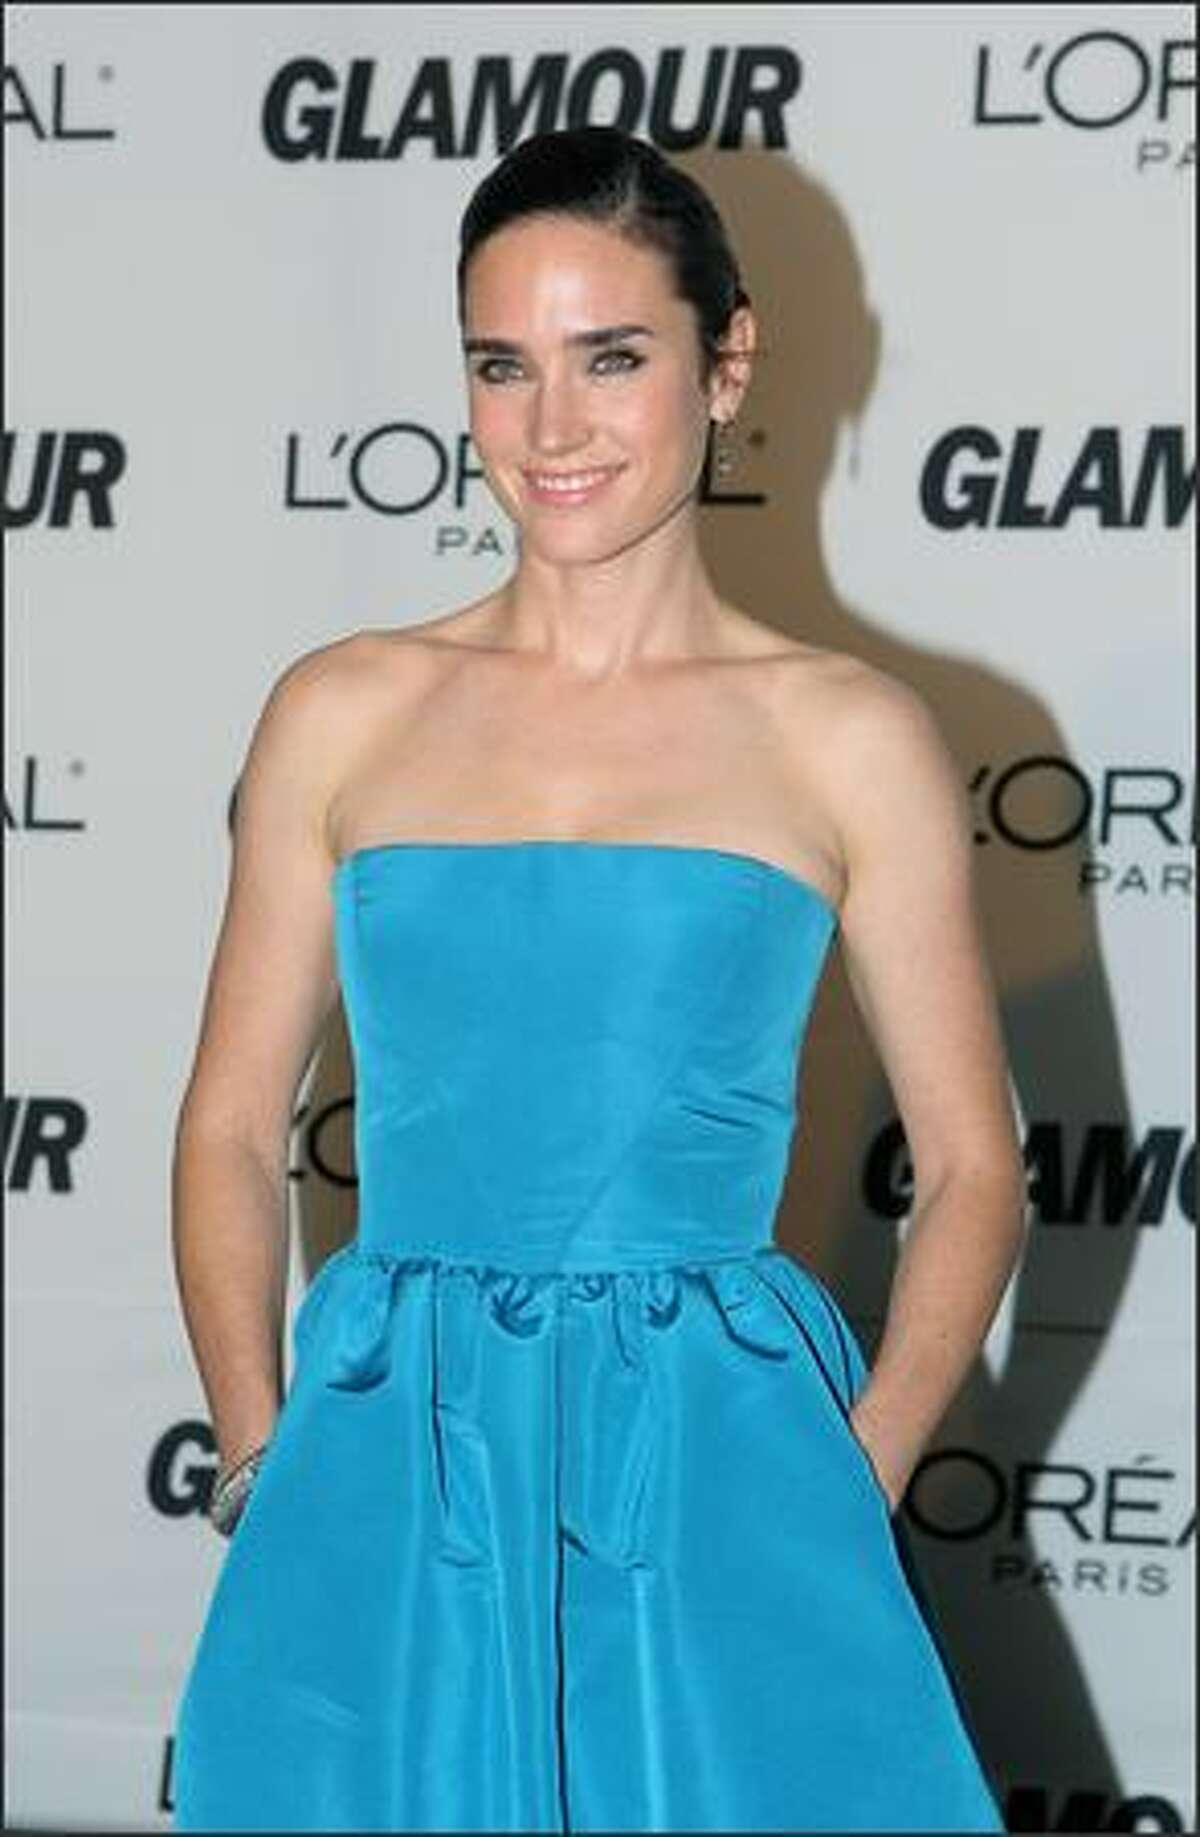 US actress Jennifer Connelly arrives for the 2007 Glamour Magazine Women of the Year Awards in New York on Monday. US Actress Jennifer Garner was named Glamour Woman of the Year, selected as the person who best presents an example of a woman with a